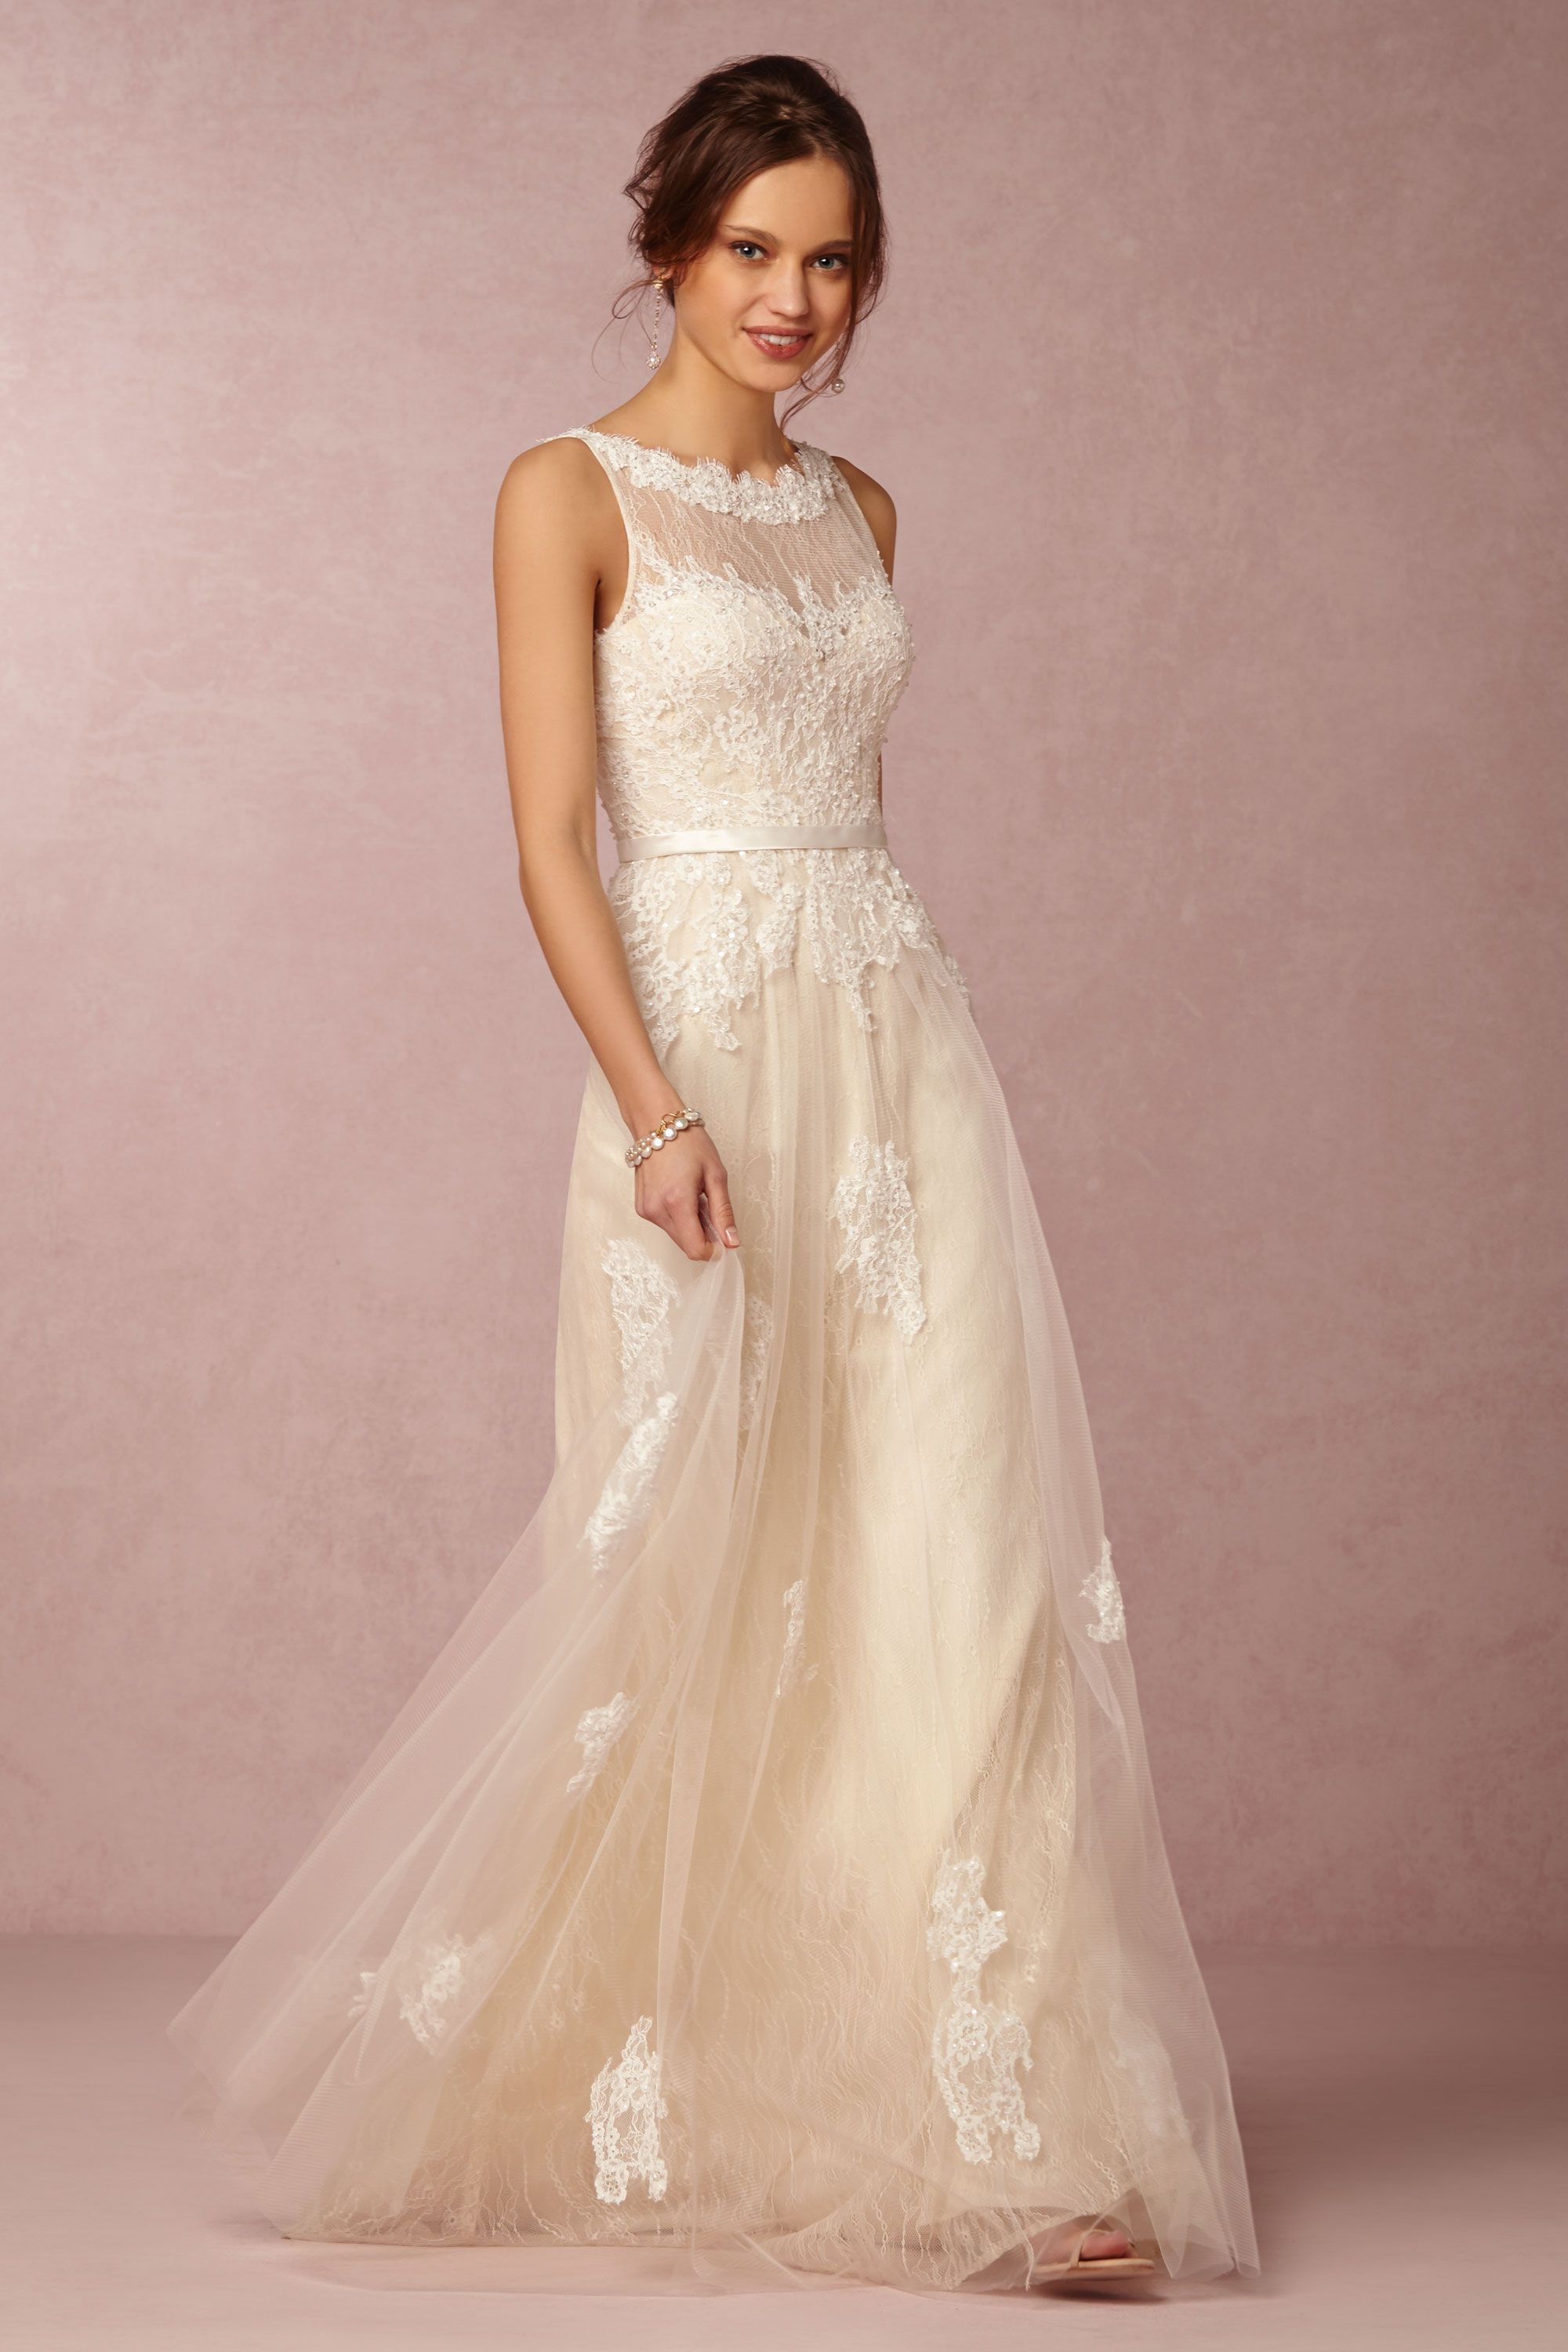 Georgia Gown in Bride Wedding Dresses at BHLDN | Great Ideas ...